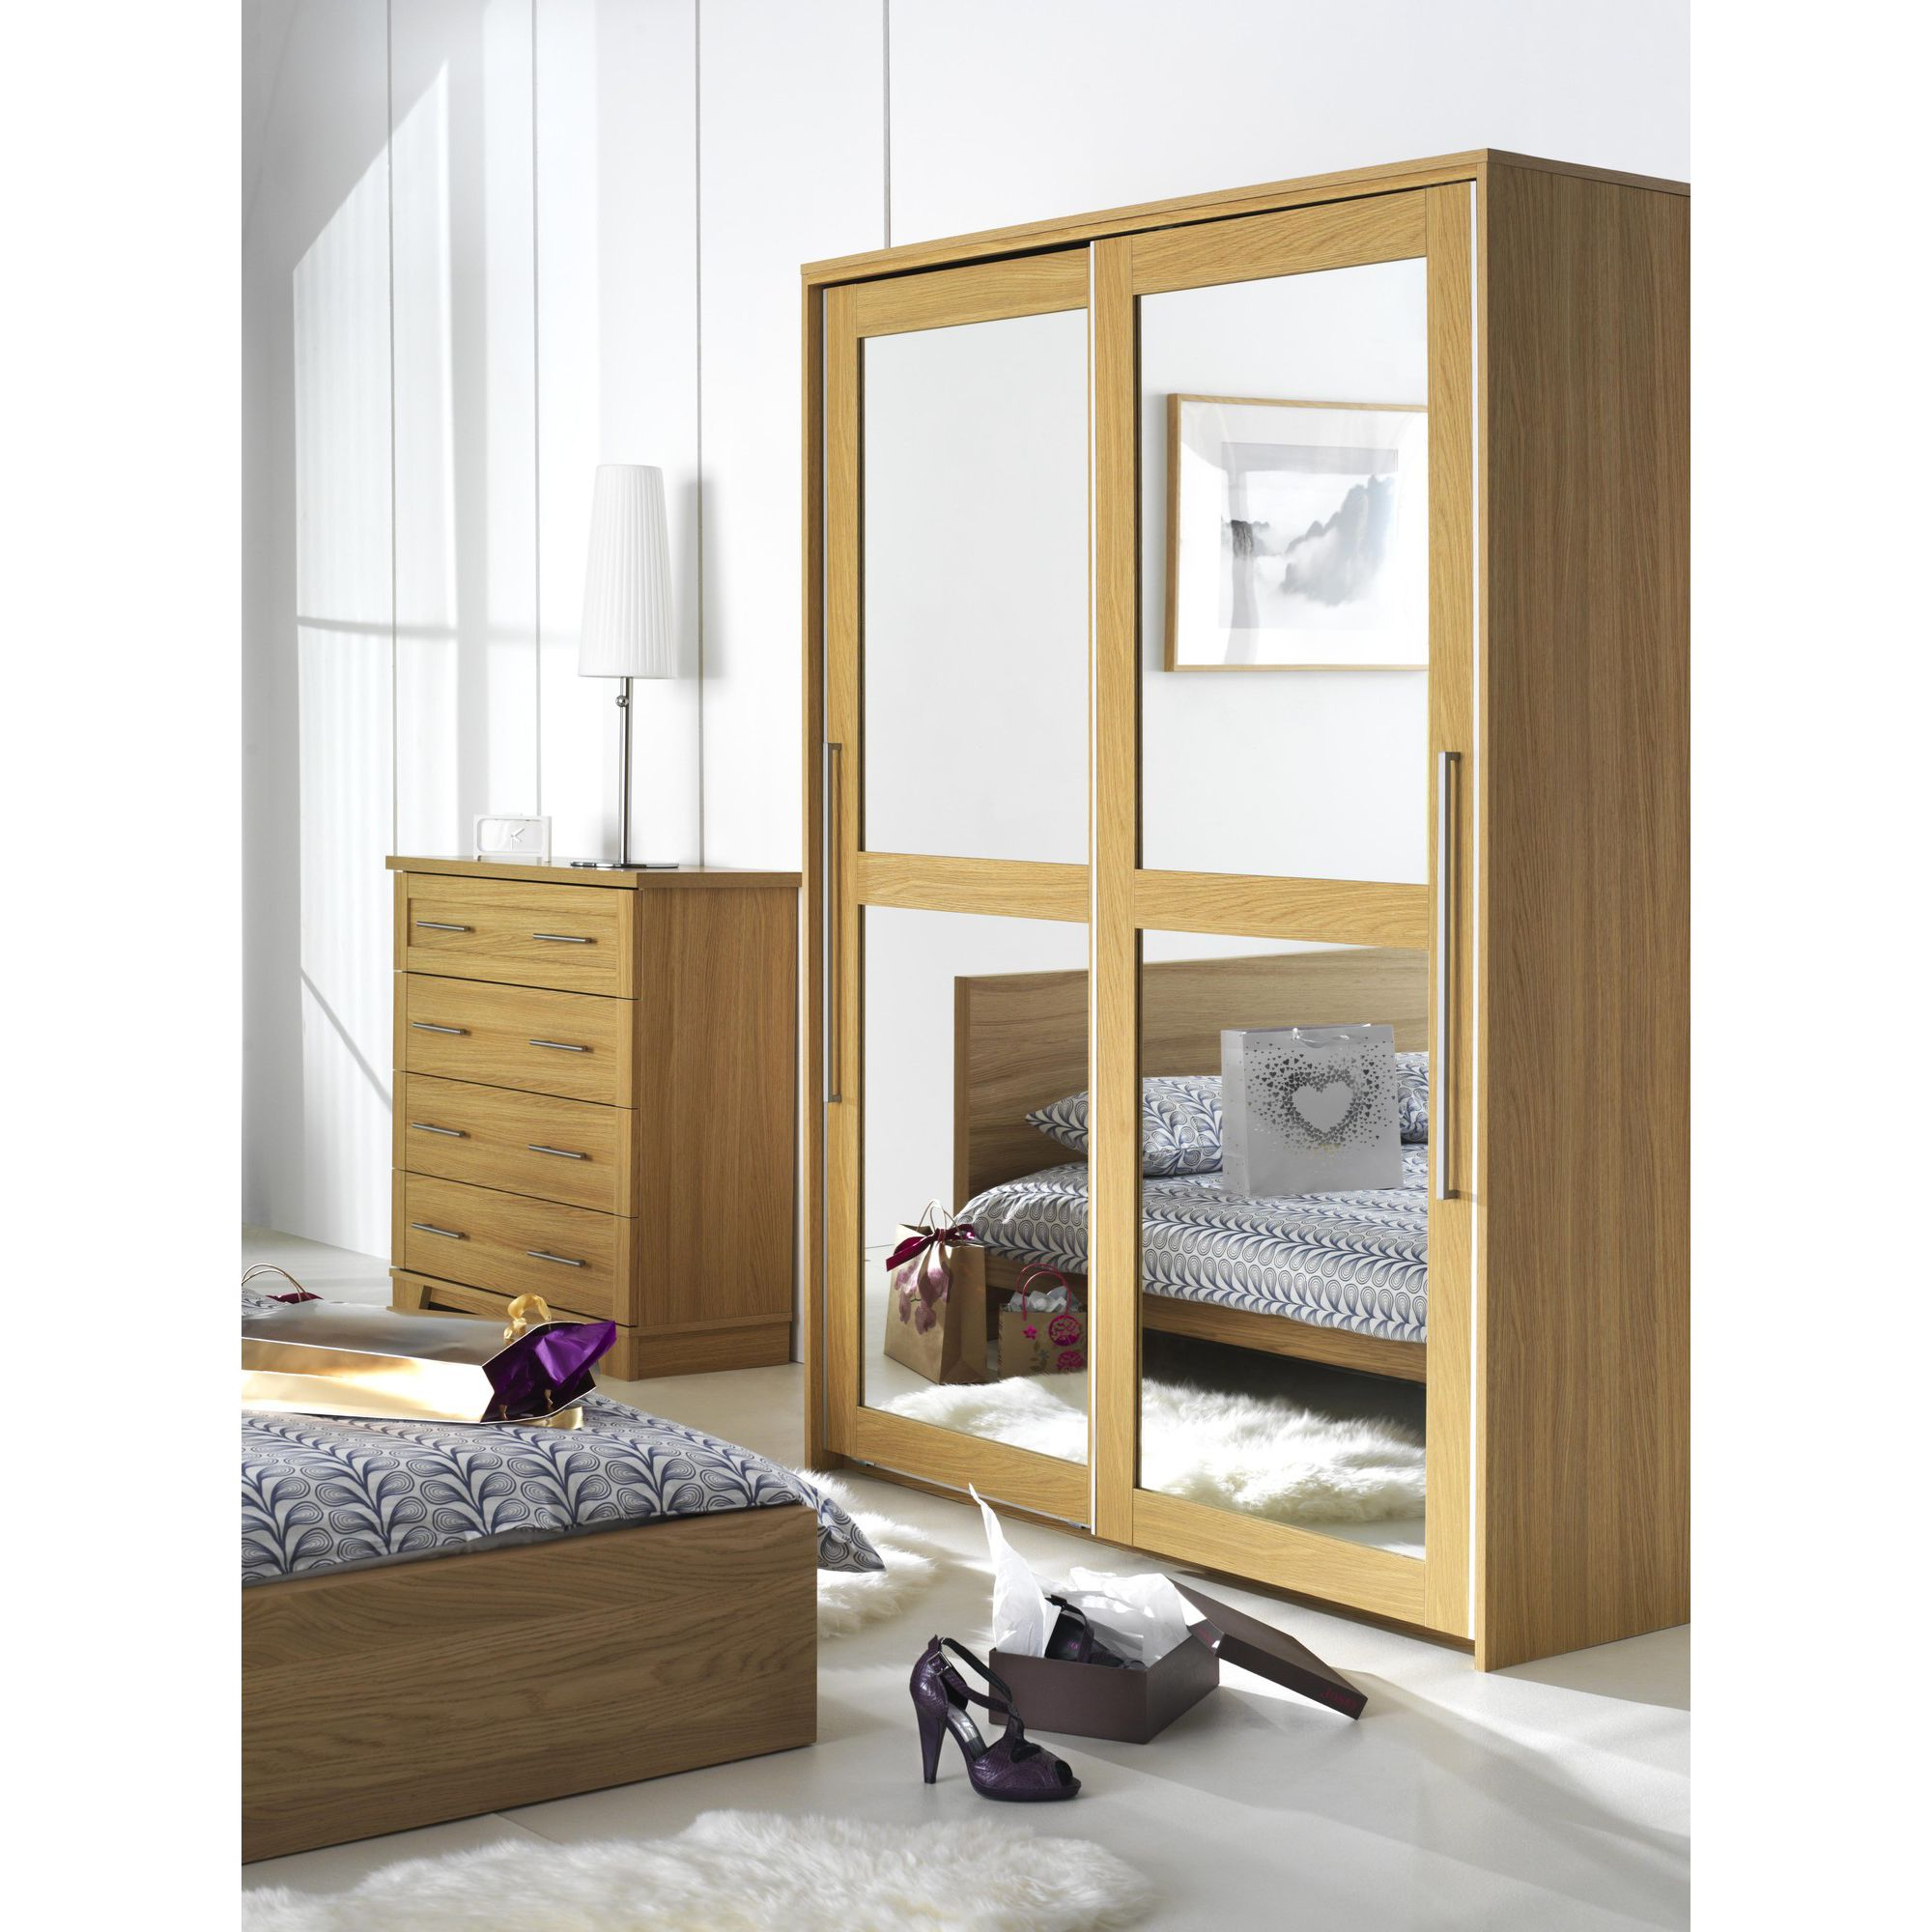 Caxton Melody 2 Door Mirrored Sliding Door Wardrobe in Natural Oak at Tesco Direct